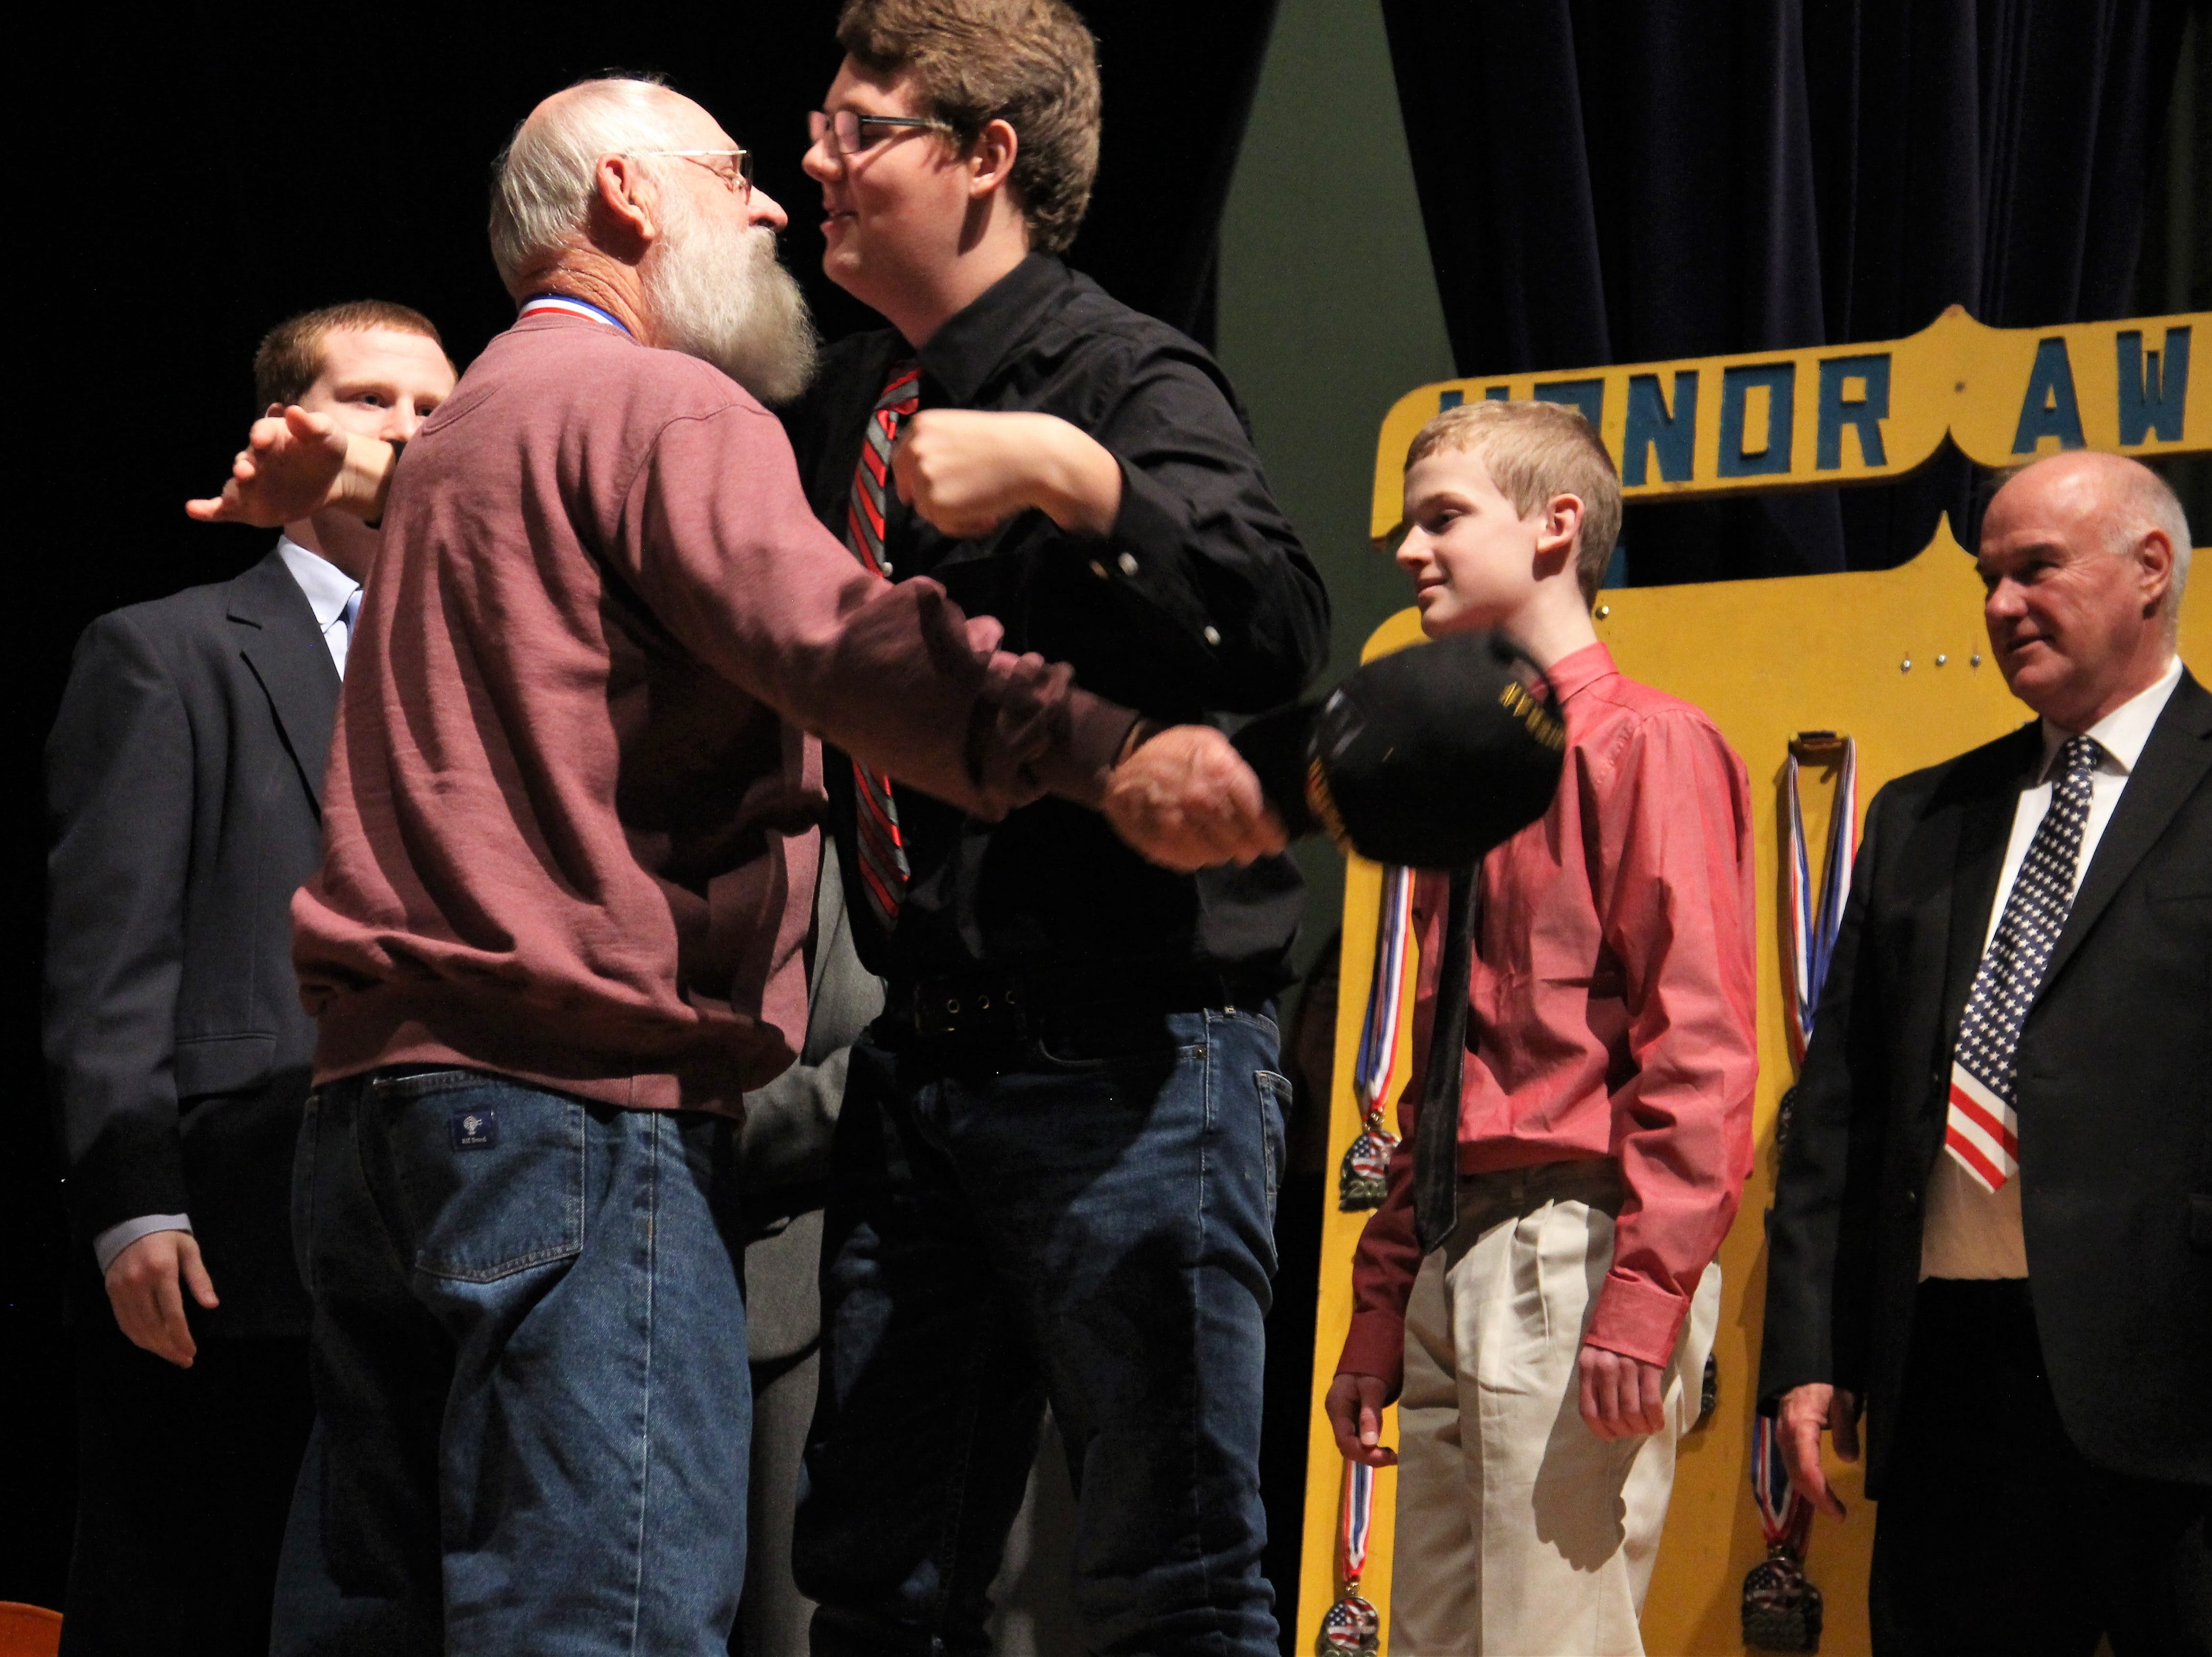 On Tuesday, a Veteran hugs a loved one as students at River Valley High School honored Marion County veterans with medals and speeches following Veterans Day.